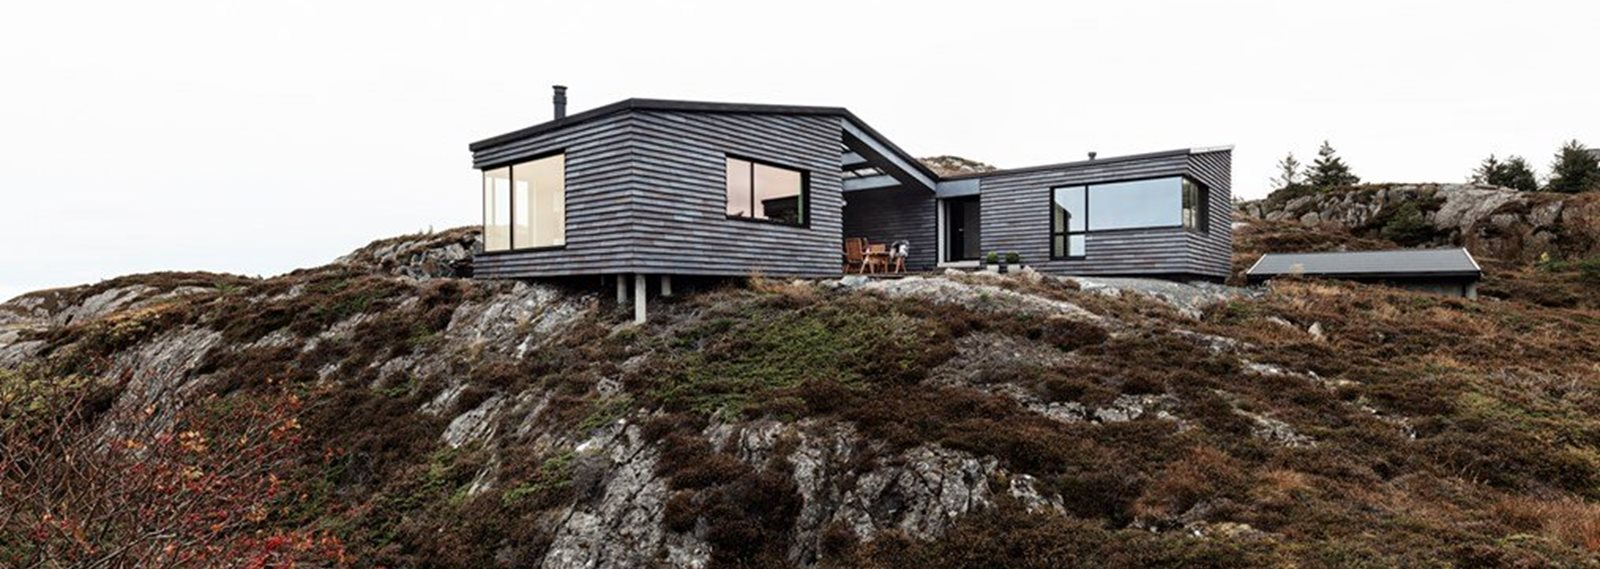 cabin on sandøya, norway